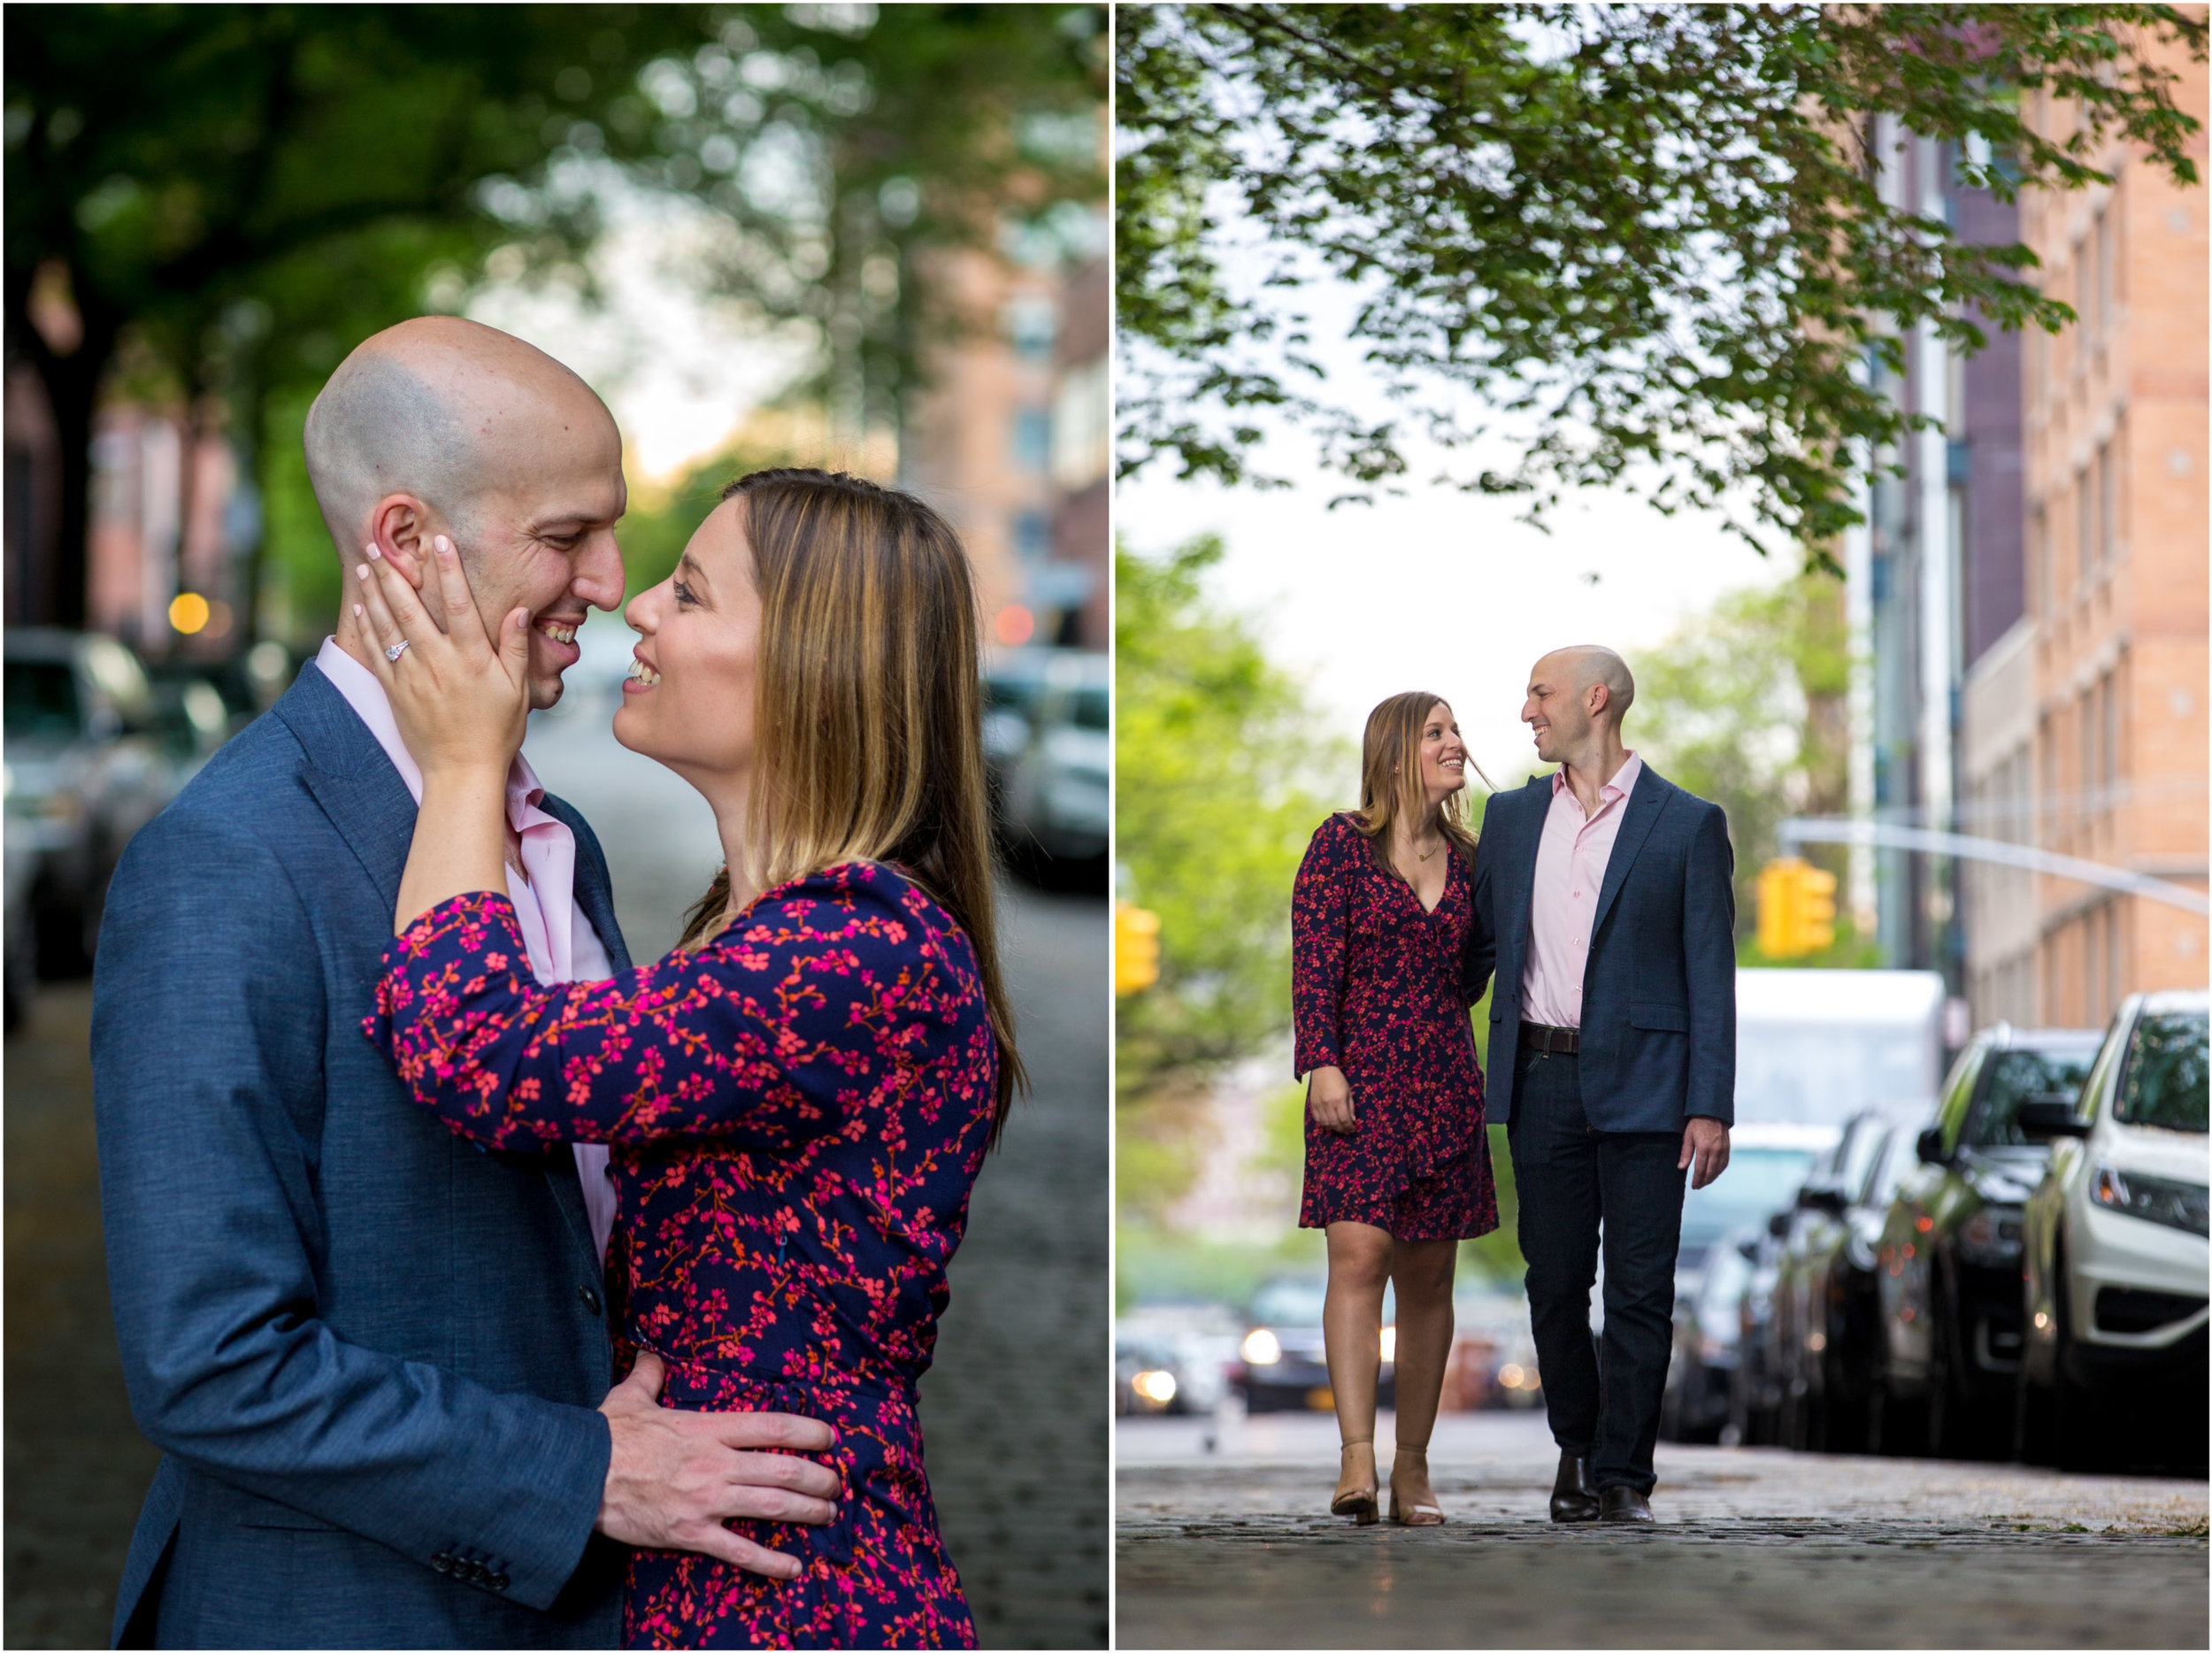 NYC Engagement Session Shoot Photos New York Wedding Photographer-18.jpg